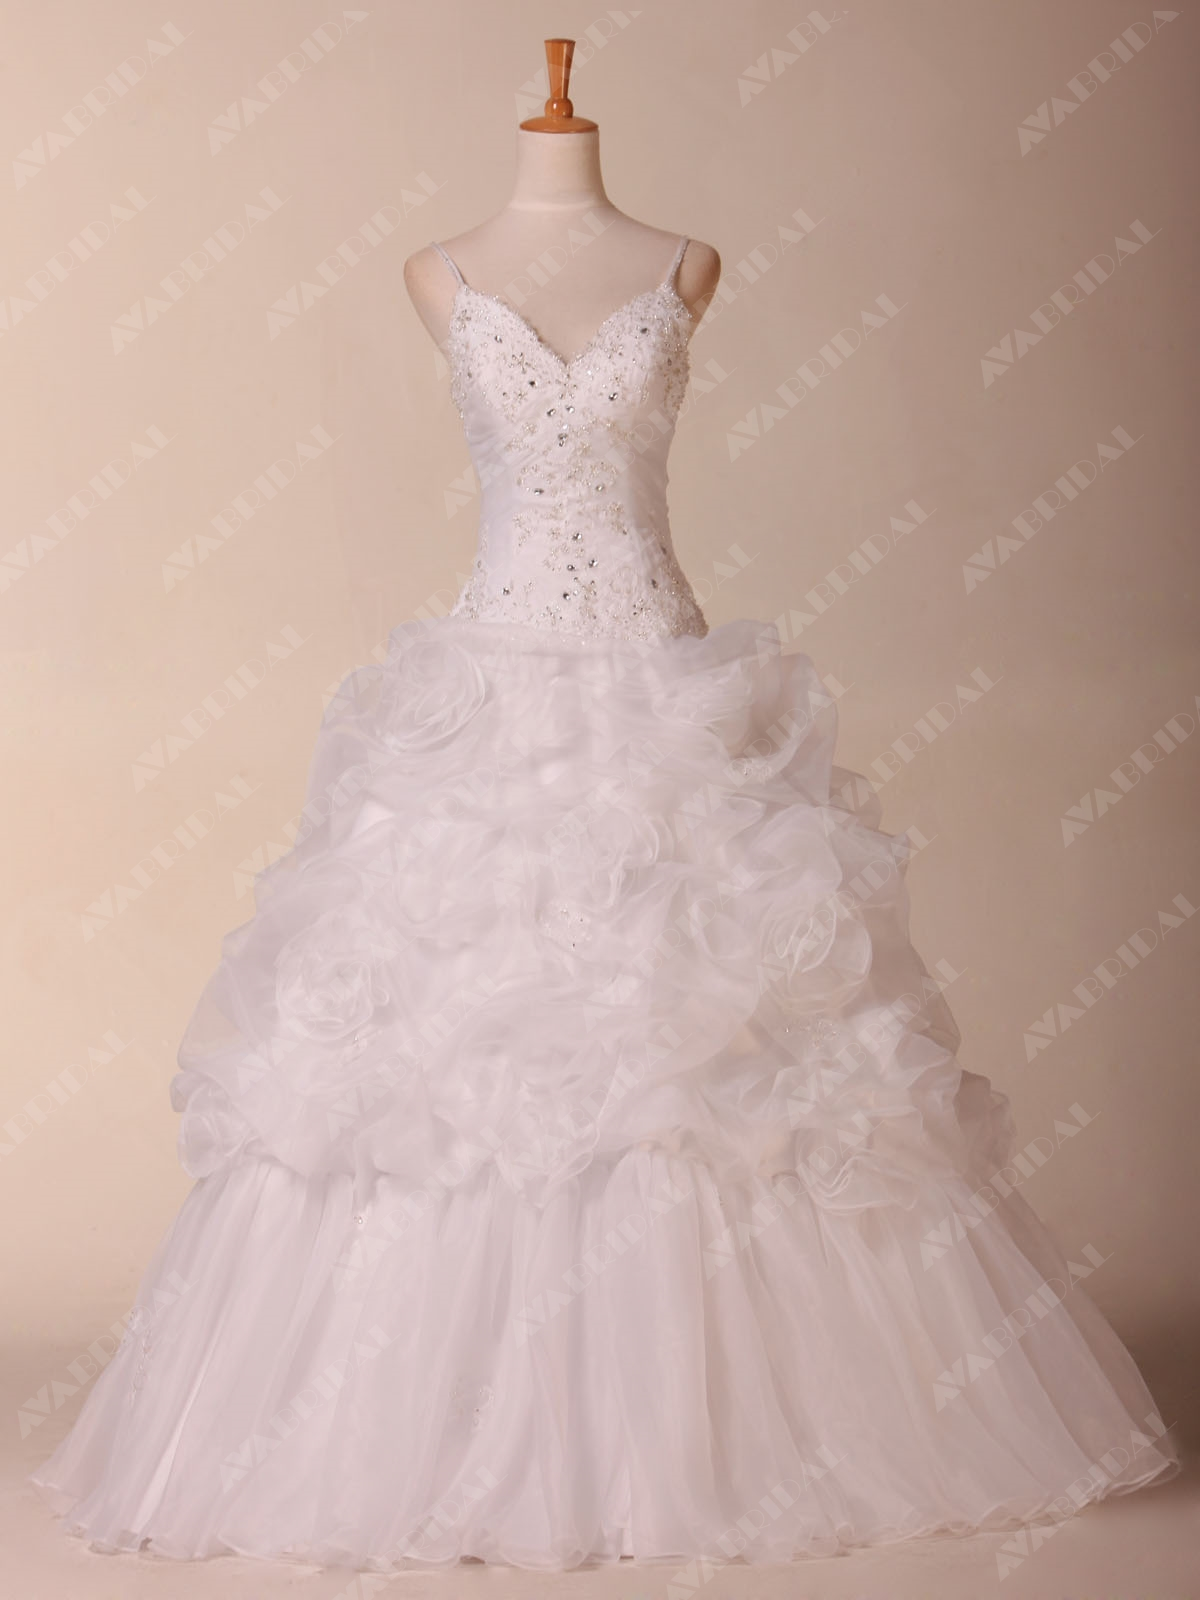 Princess Wedding Dress - Paige - Front